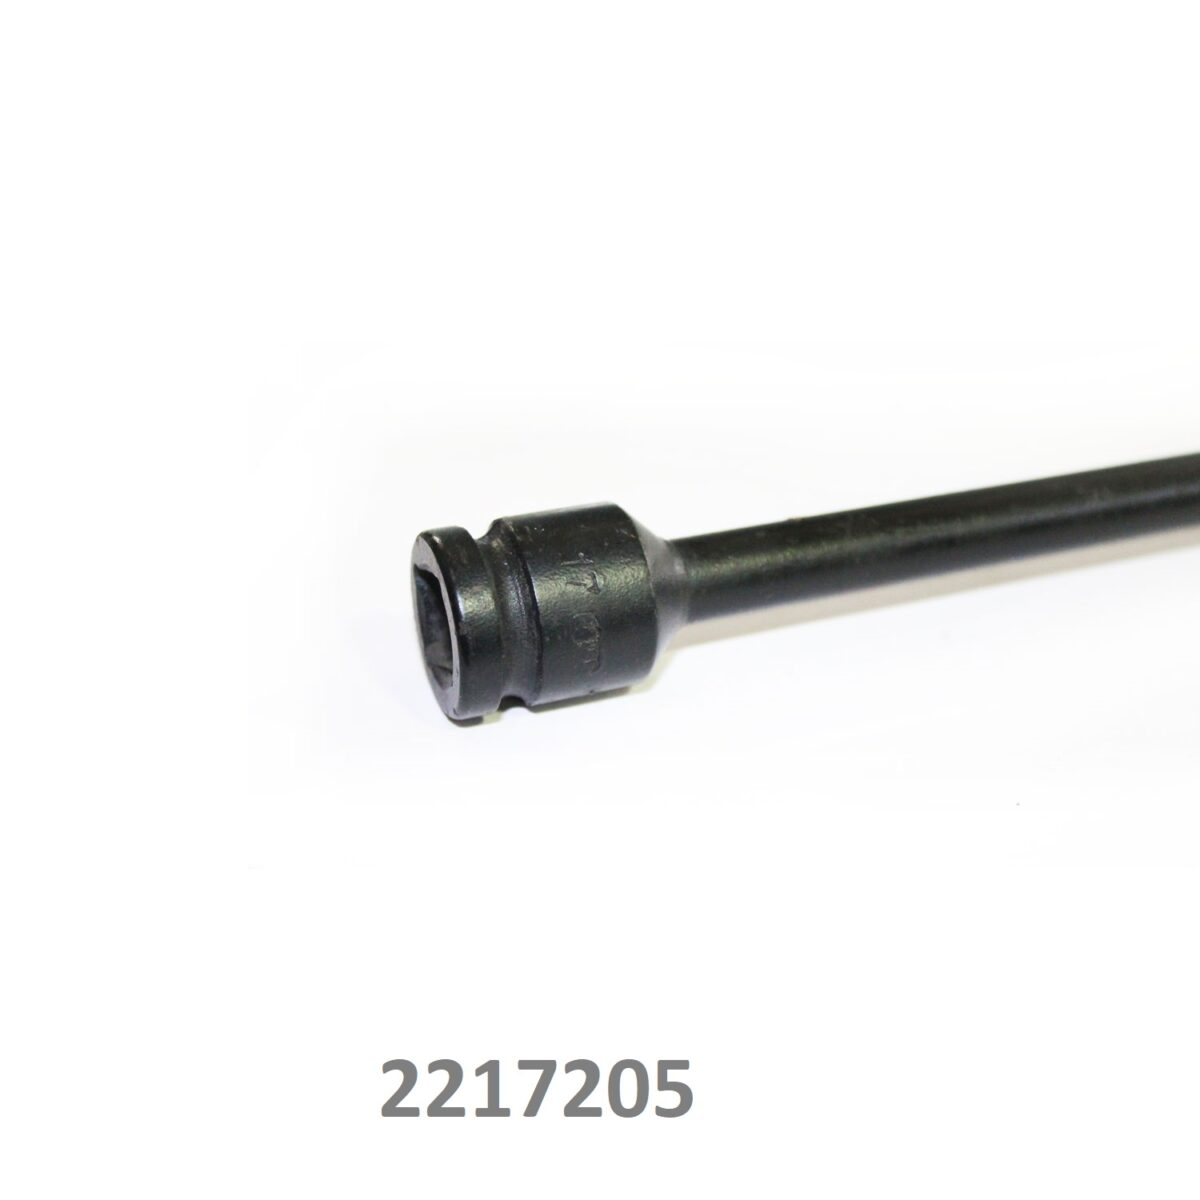 """SARV 17mm x 205 mm x110 NM Single End Wheel Lug Nut Wrench with 1/2 """" Square Drive"""